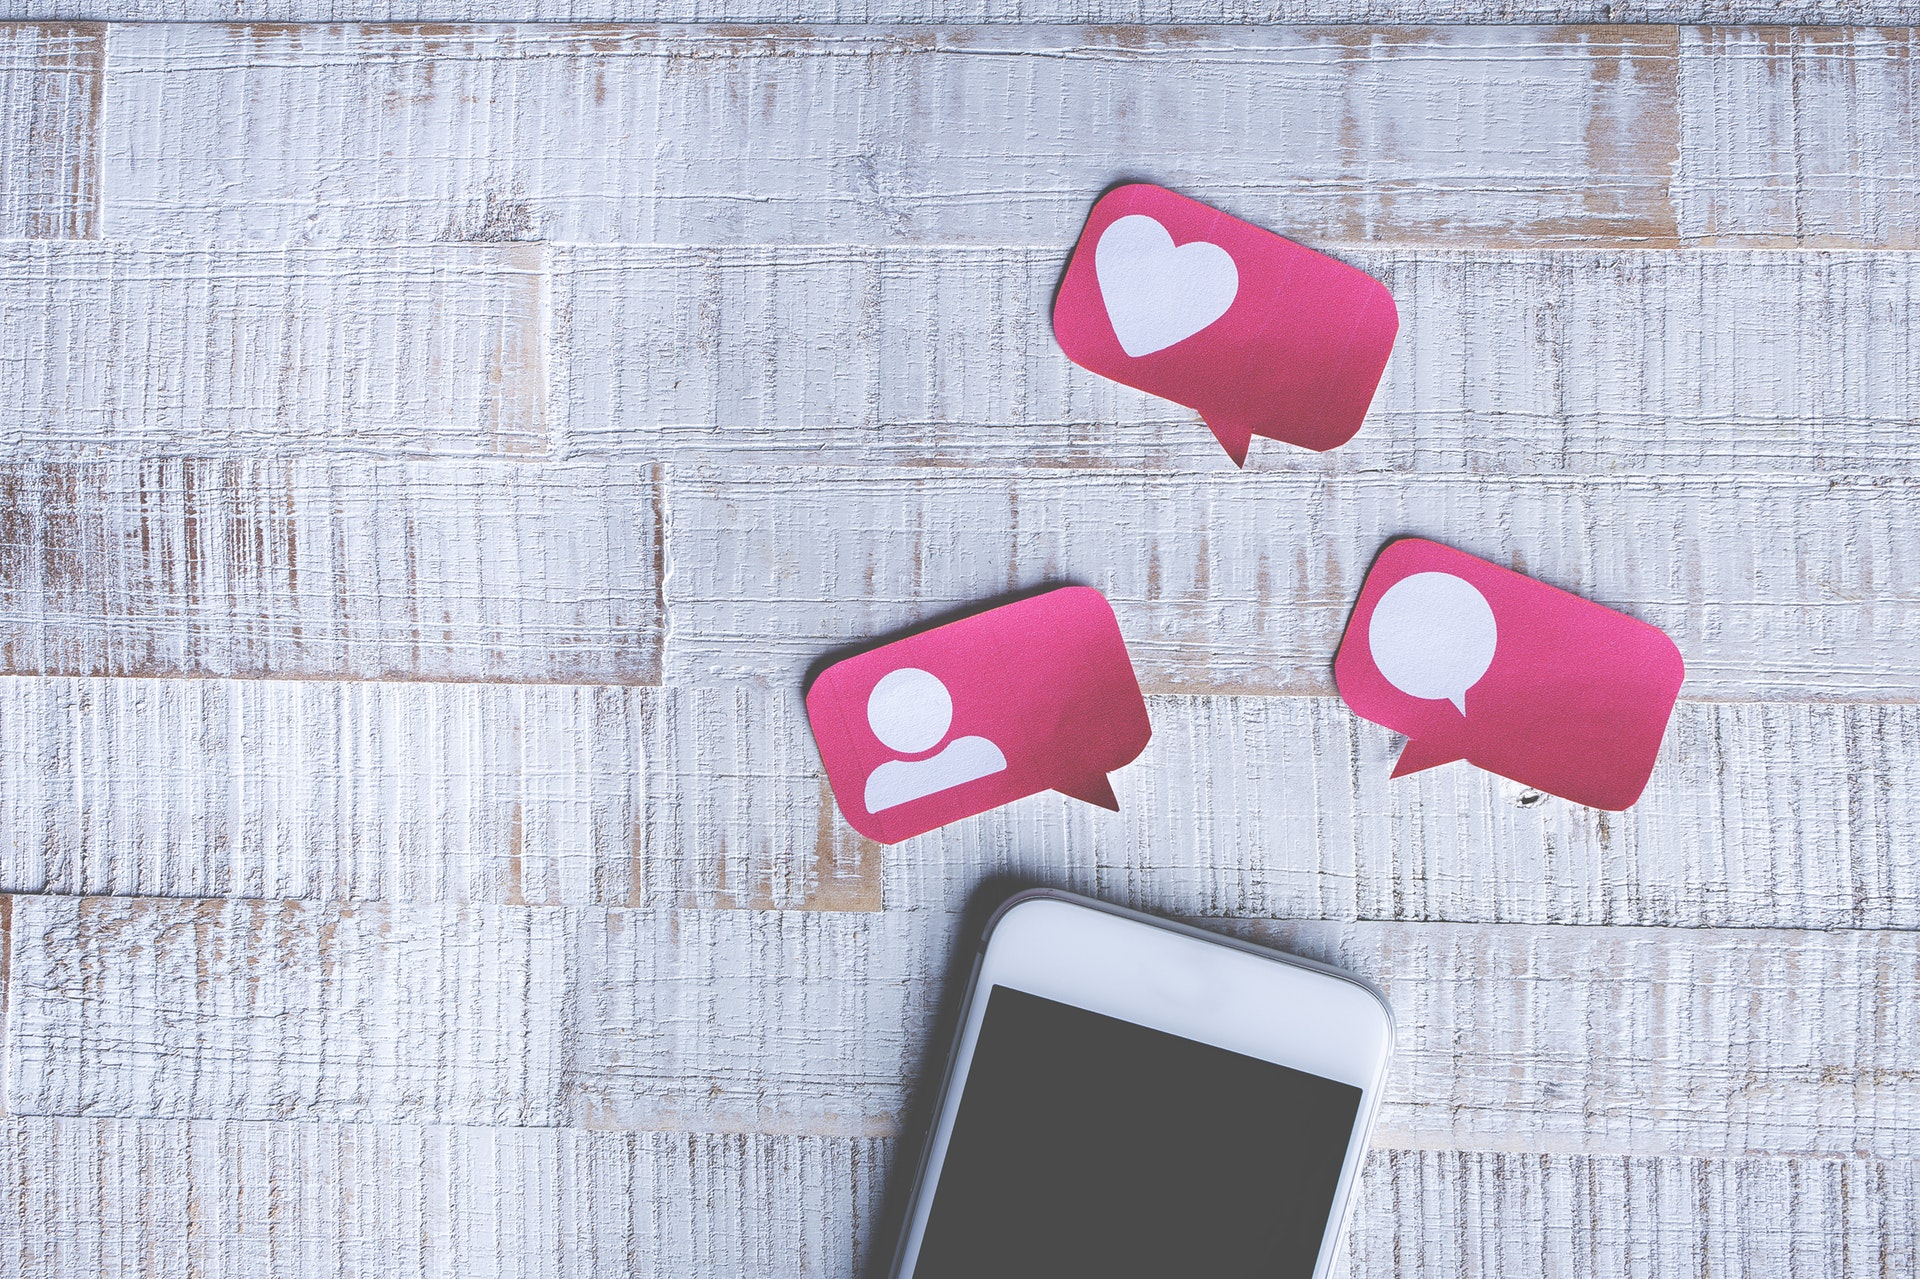 Cell phone on desk with social media likes and hearts icons